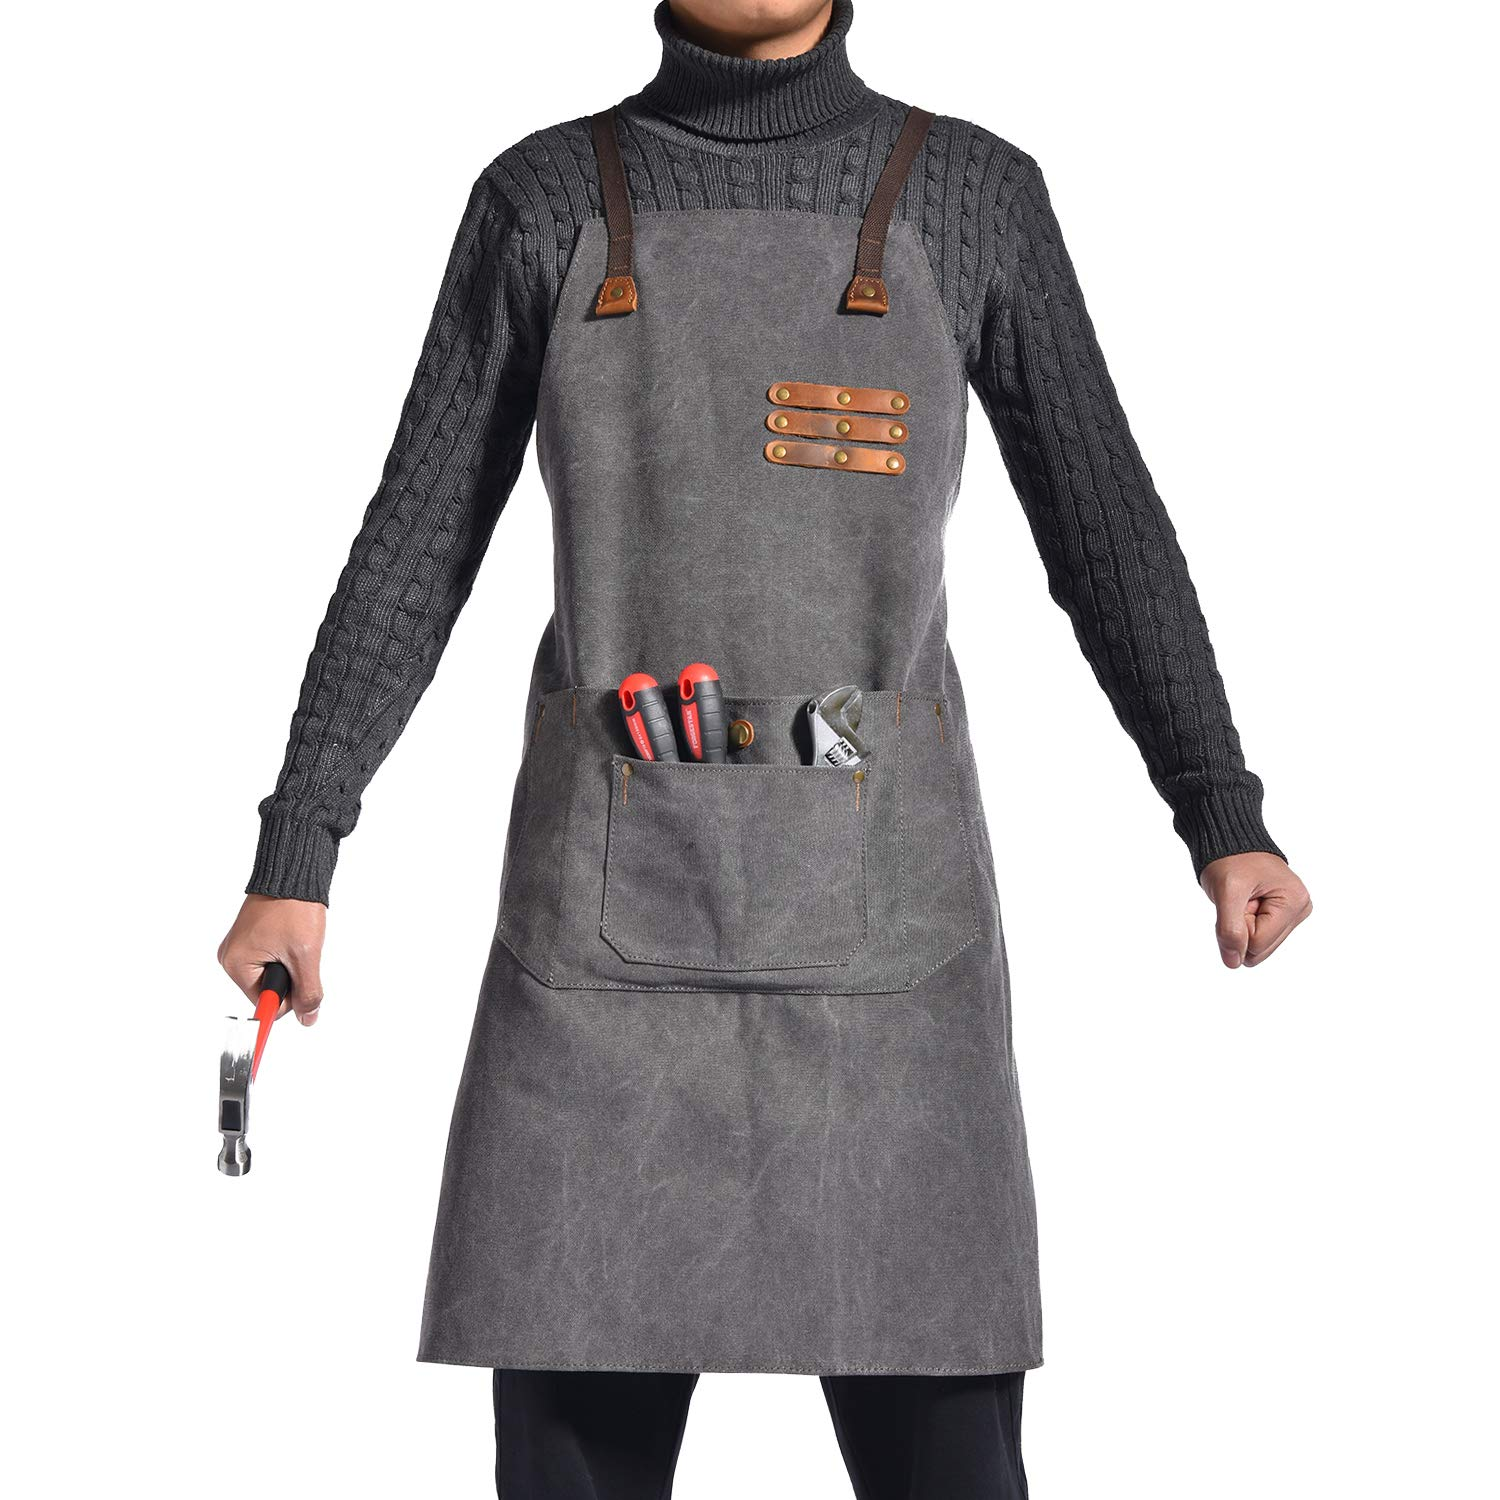 Canvas Shop Apron for Men & Women| Heavy Duty Work Apron with Pocket & Cross-Back Straps | Adjustable Tool Apron M to XXL(Grey)